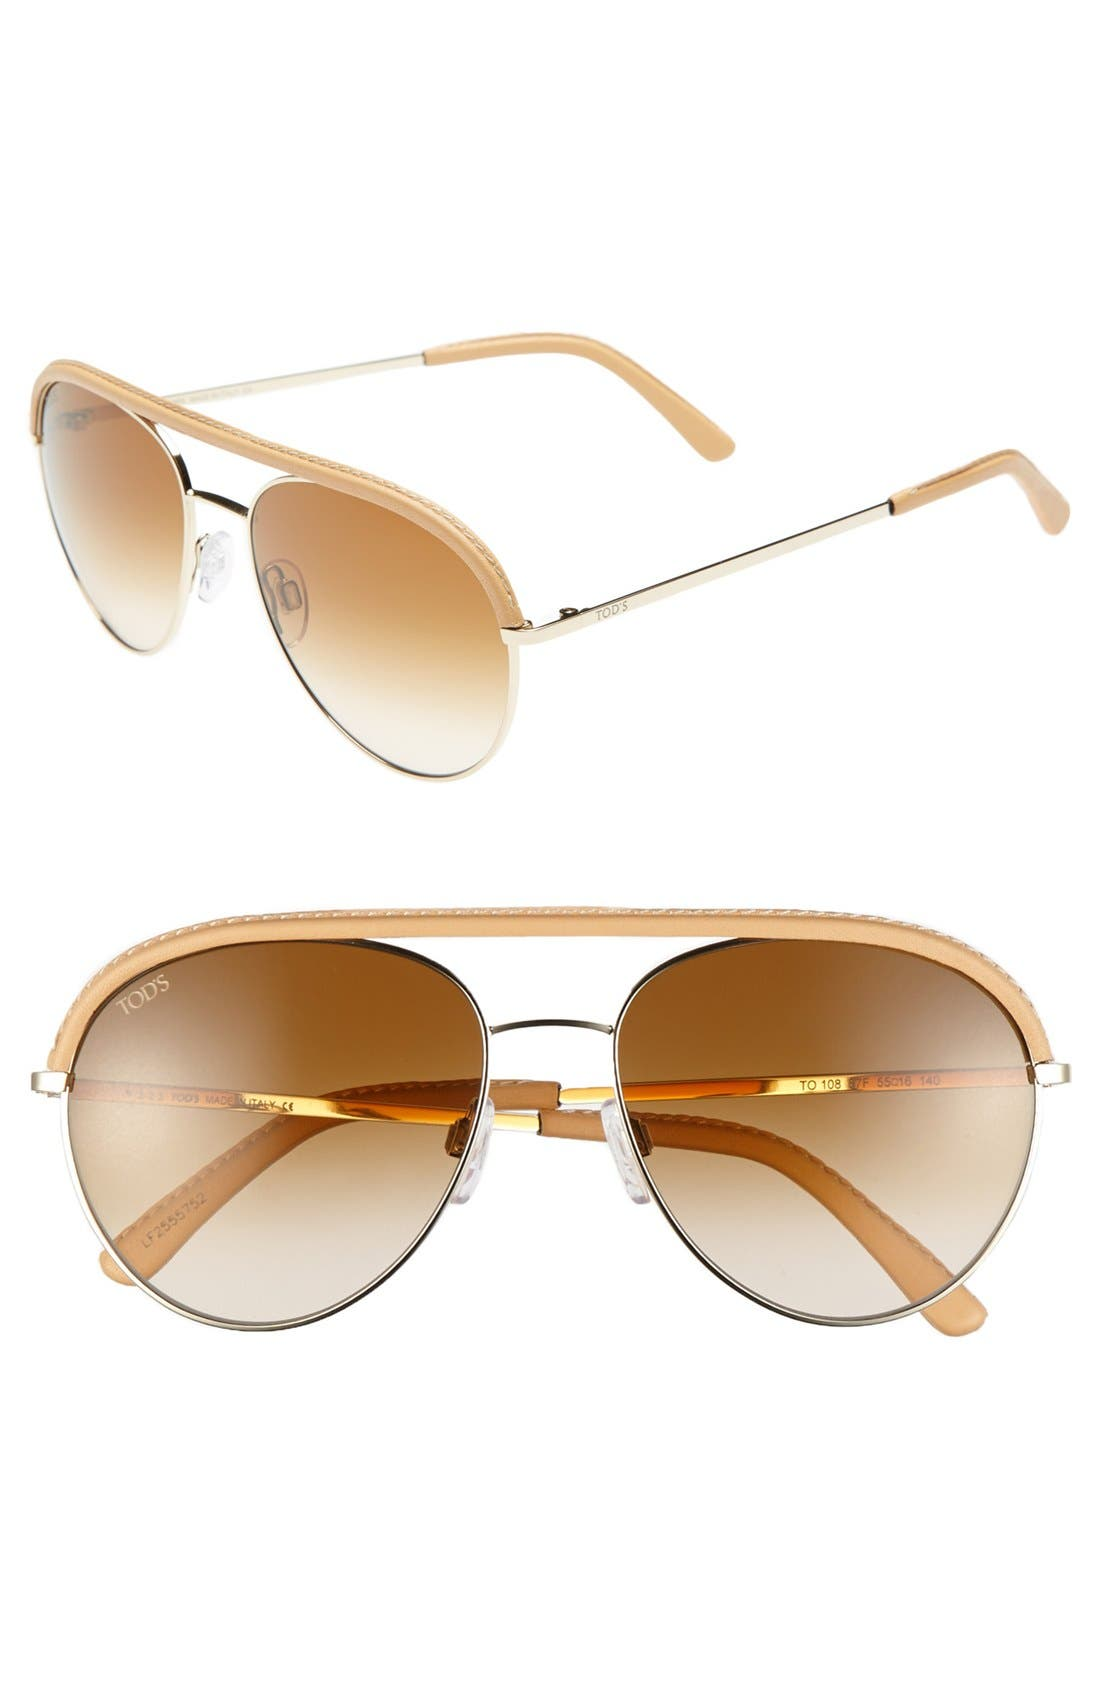 Alternate Image 1 Selected - Tod's 55mm Aviator Sunglasses